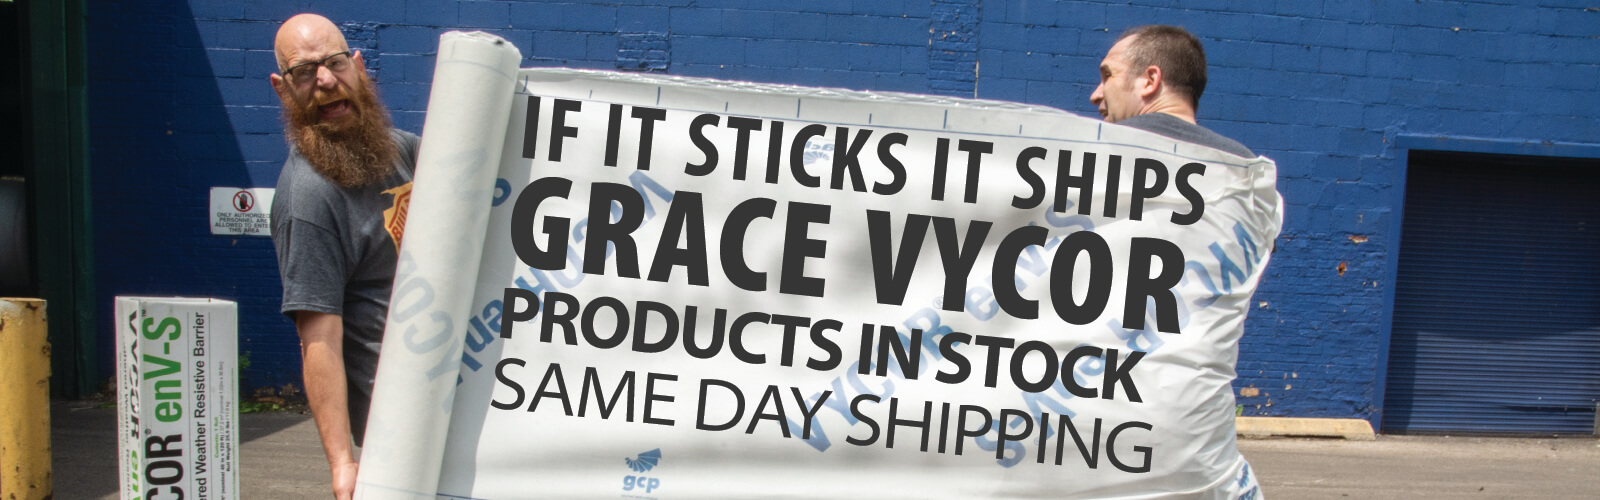 If it sticks, it ships. Grace Vycor products in stock, same day shipping